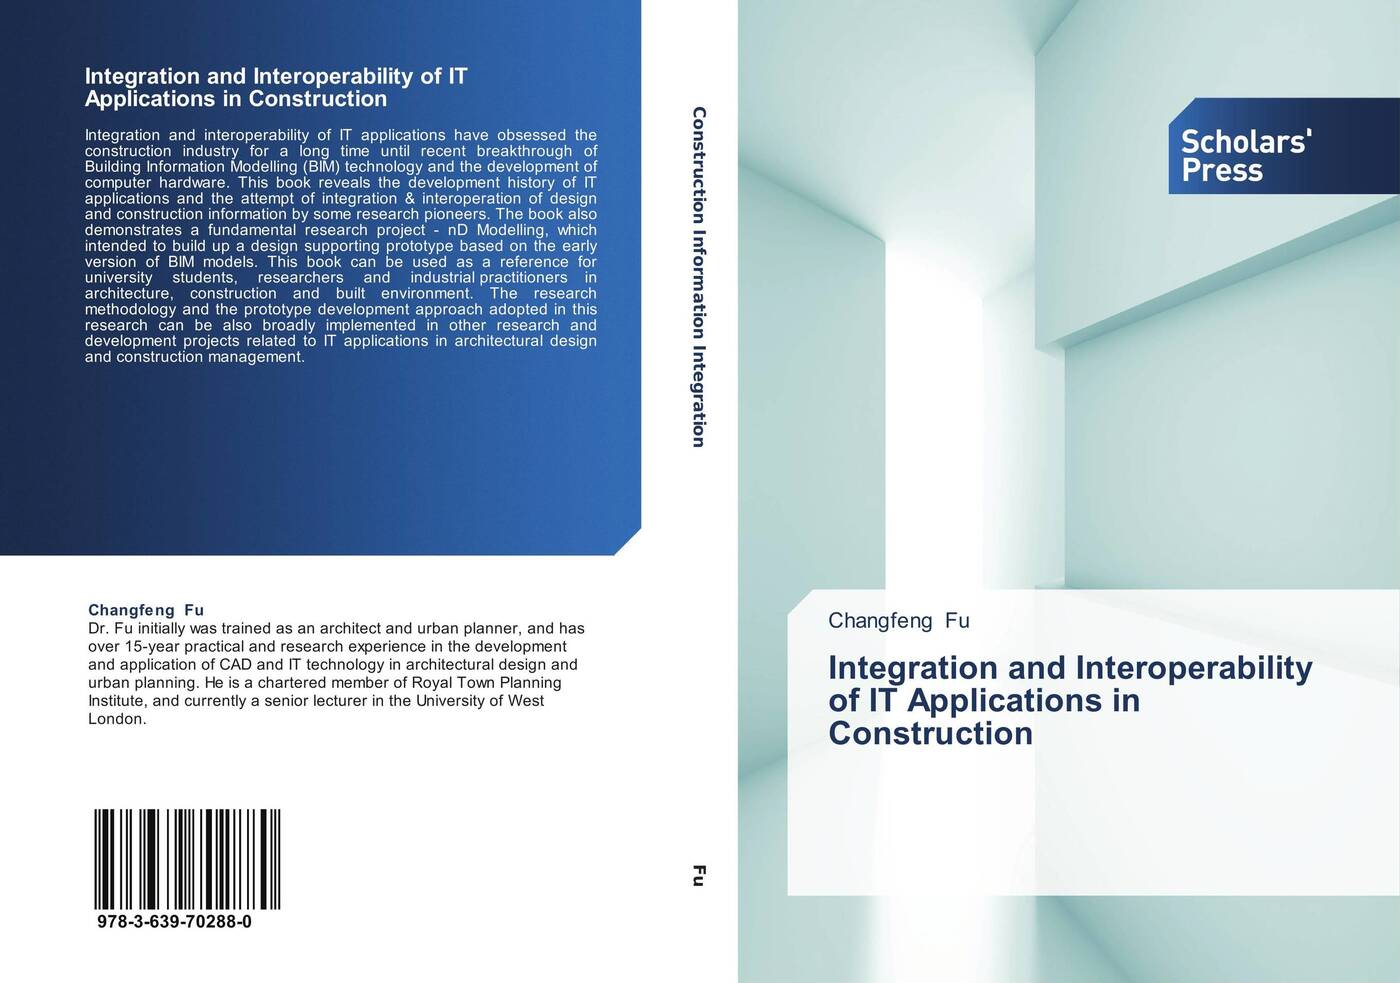 Changfeng Fu Integration and Interoperability of IT Applications in Construction